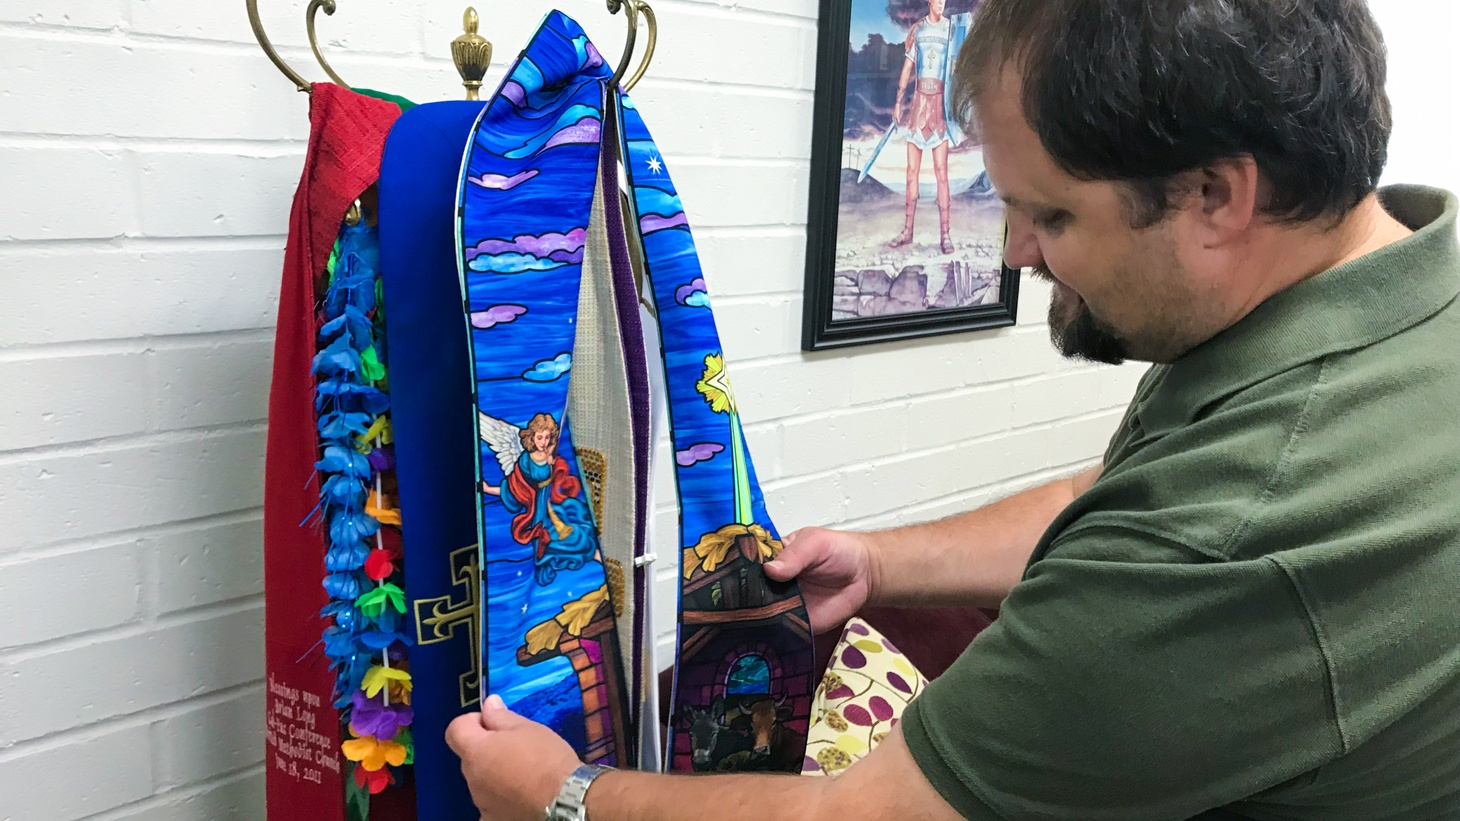 A collection of prayer shawls hang in the office of Pastor Brian Long in Yorba Linda, California. Long says he does not support same-sex marriage in the church. His congregants, however, are split over the issue.